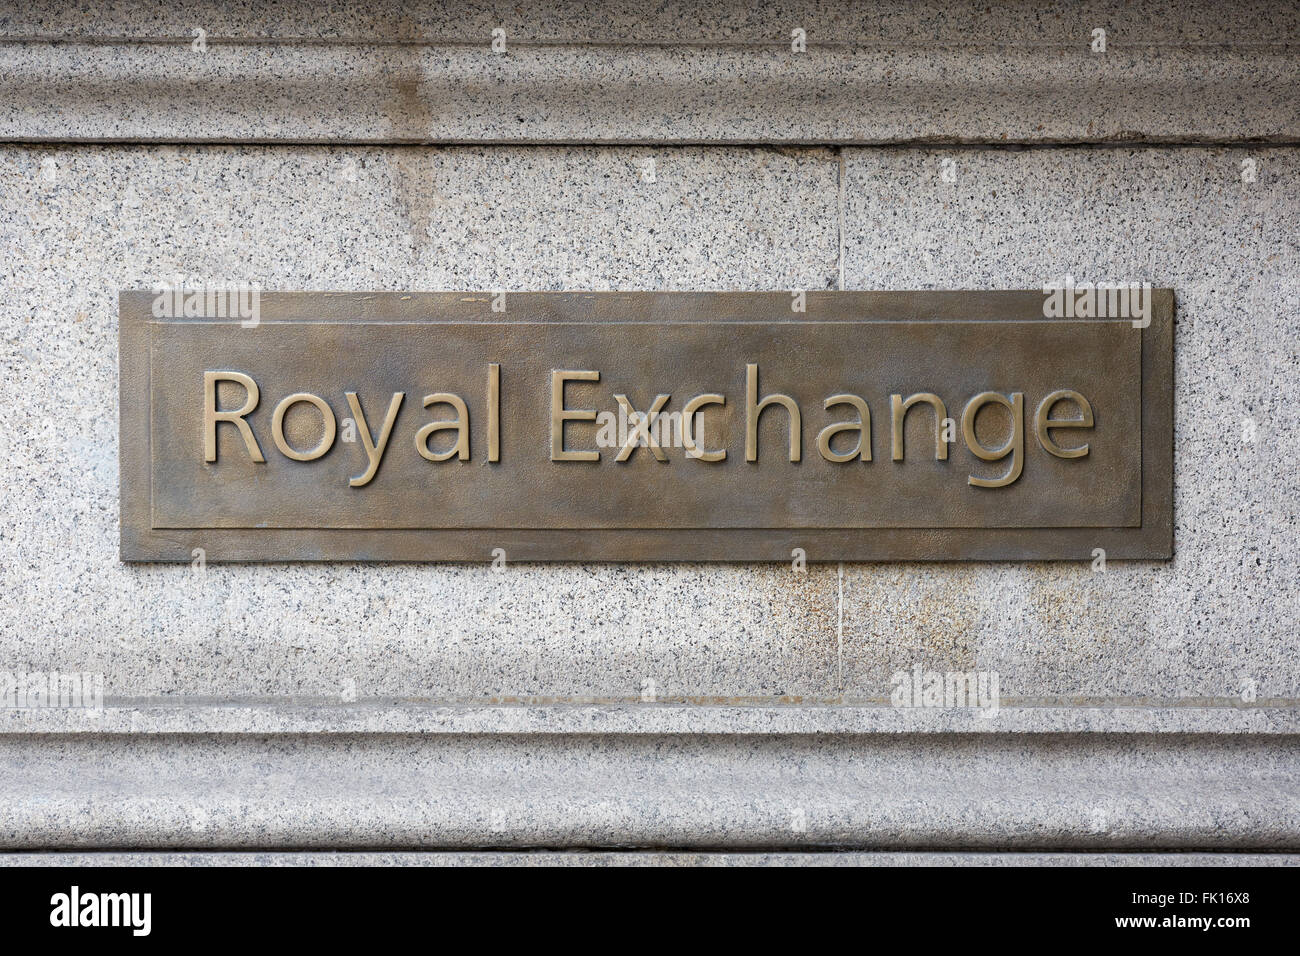 Royal Exchange sign plaque in the City of London - Stock Image